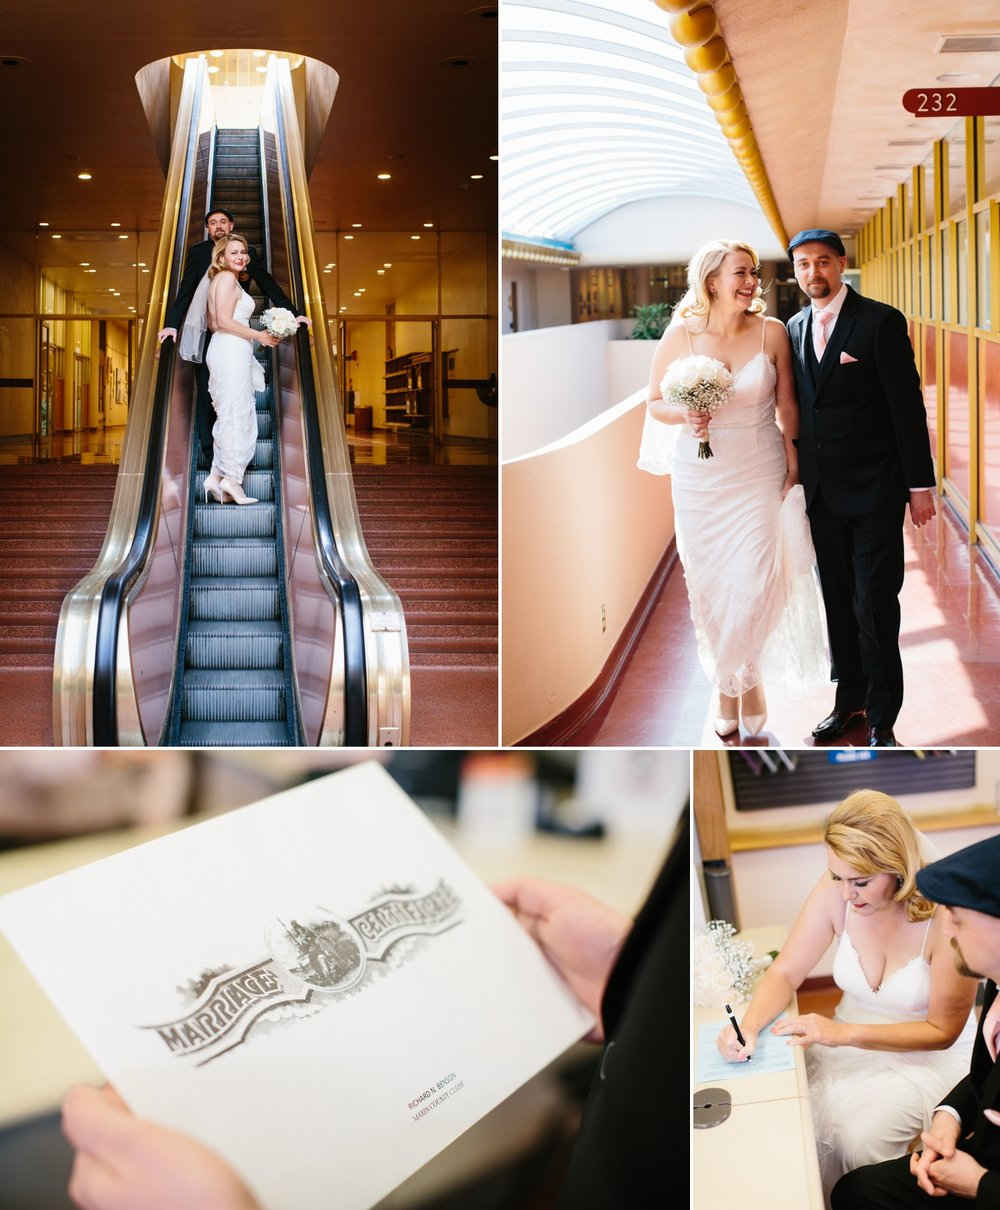 The escalator ride up to the Marin County Clerk's office, and filling out the marriage license!